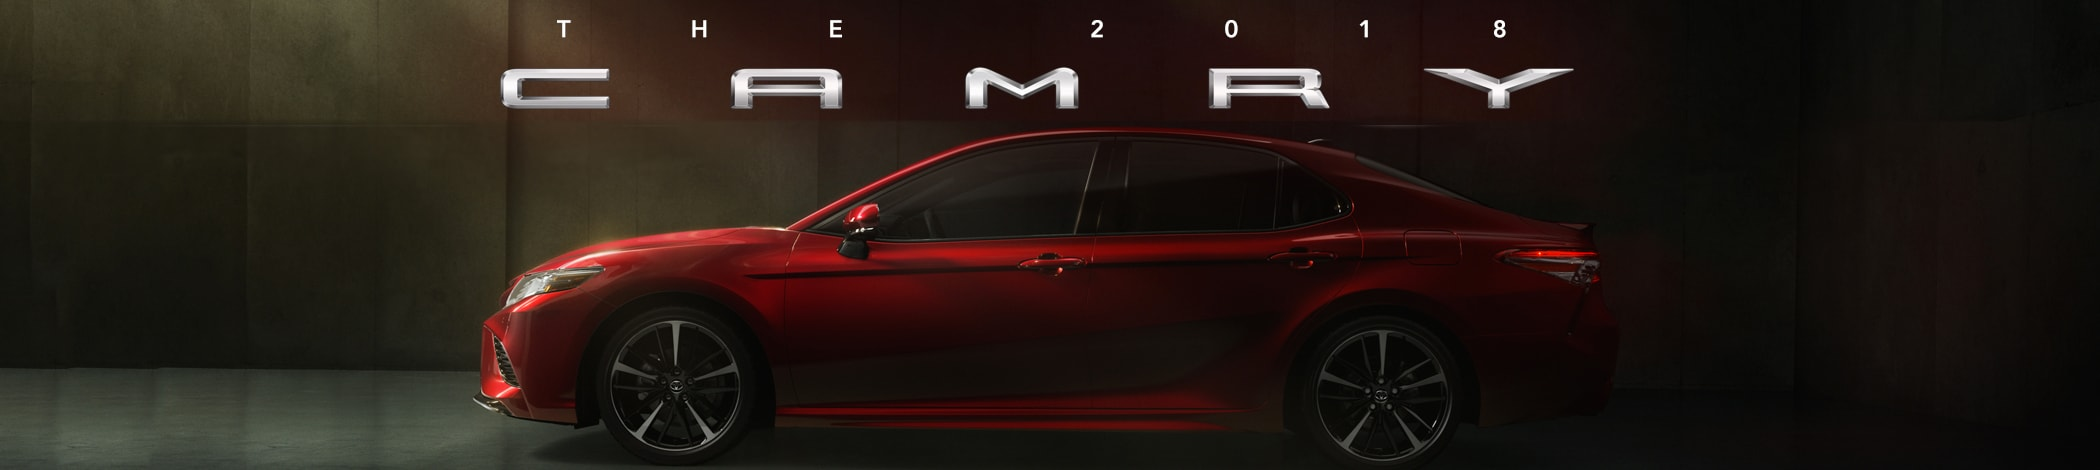 2018 Toyota Camry | The New 2018 Camry At Toyota of Greenville